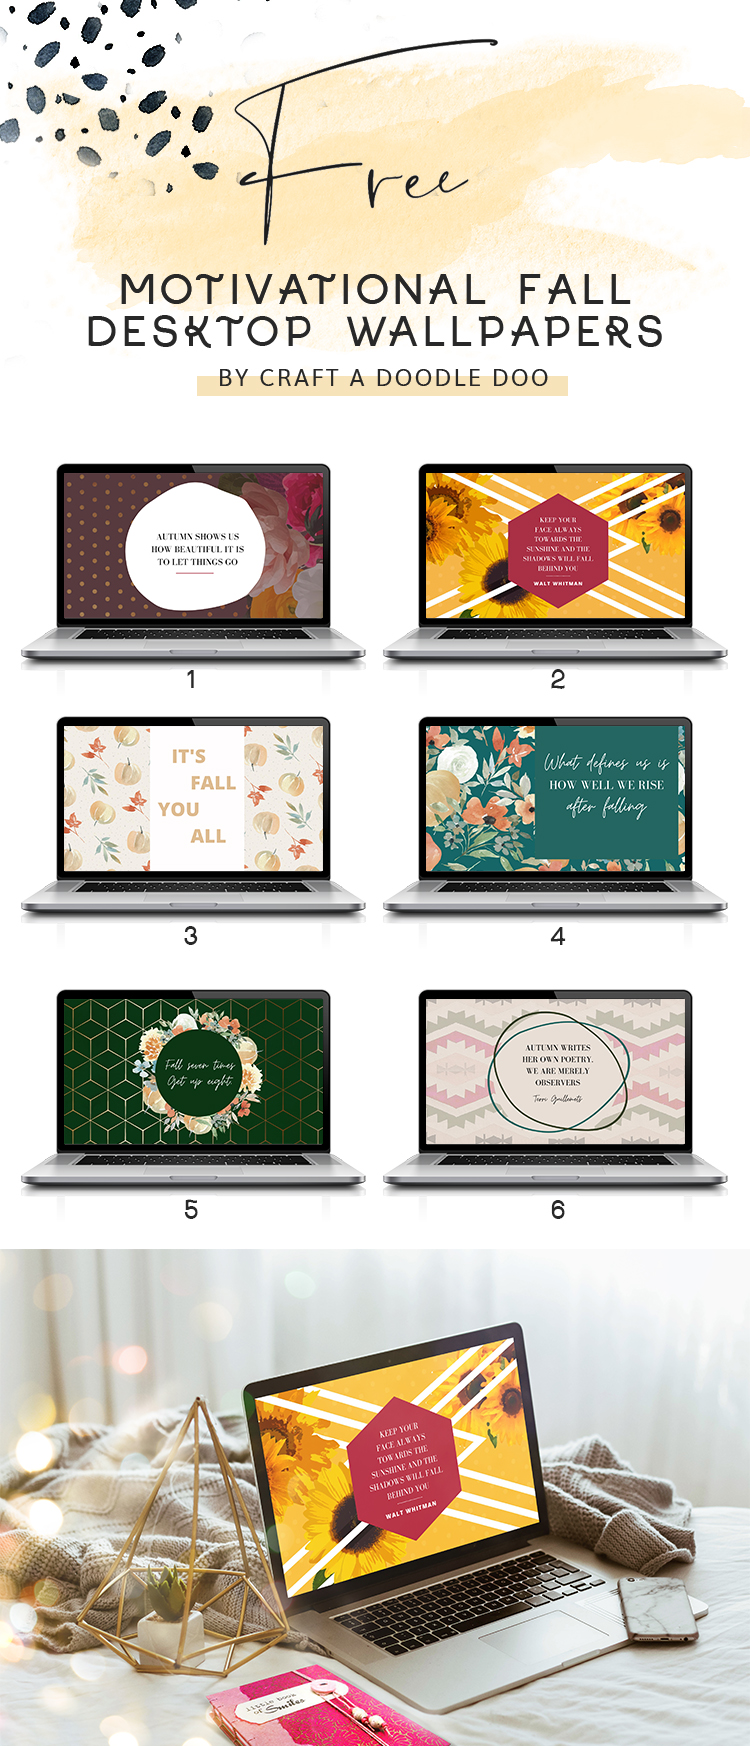 Free Fall/Autumn Desktop Motivational Wallpapers by Craft A Doodle Doo. 6 gorgeous fall quotes and autumnal themed backgrounds for your tablet and computer. Instant digital download. #fallwallpapers #fallprints #fallinspiration #autumnwallpapers #autumnstyle #fallquotes #inspirationalwallpapers